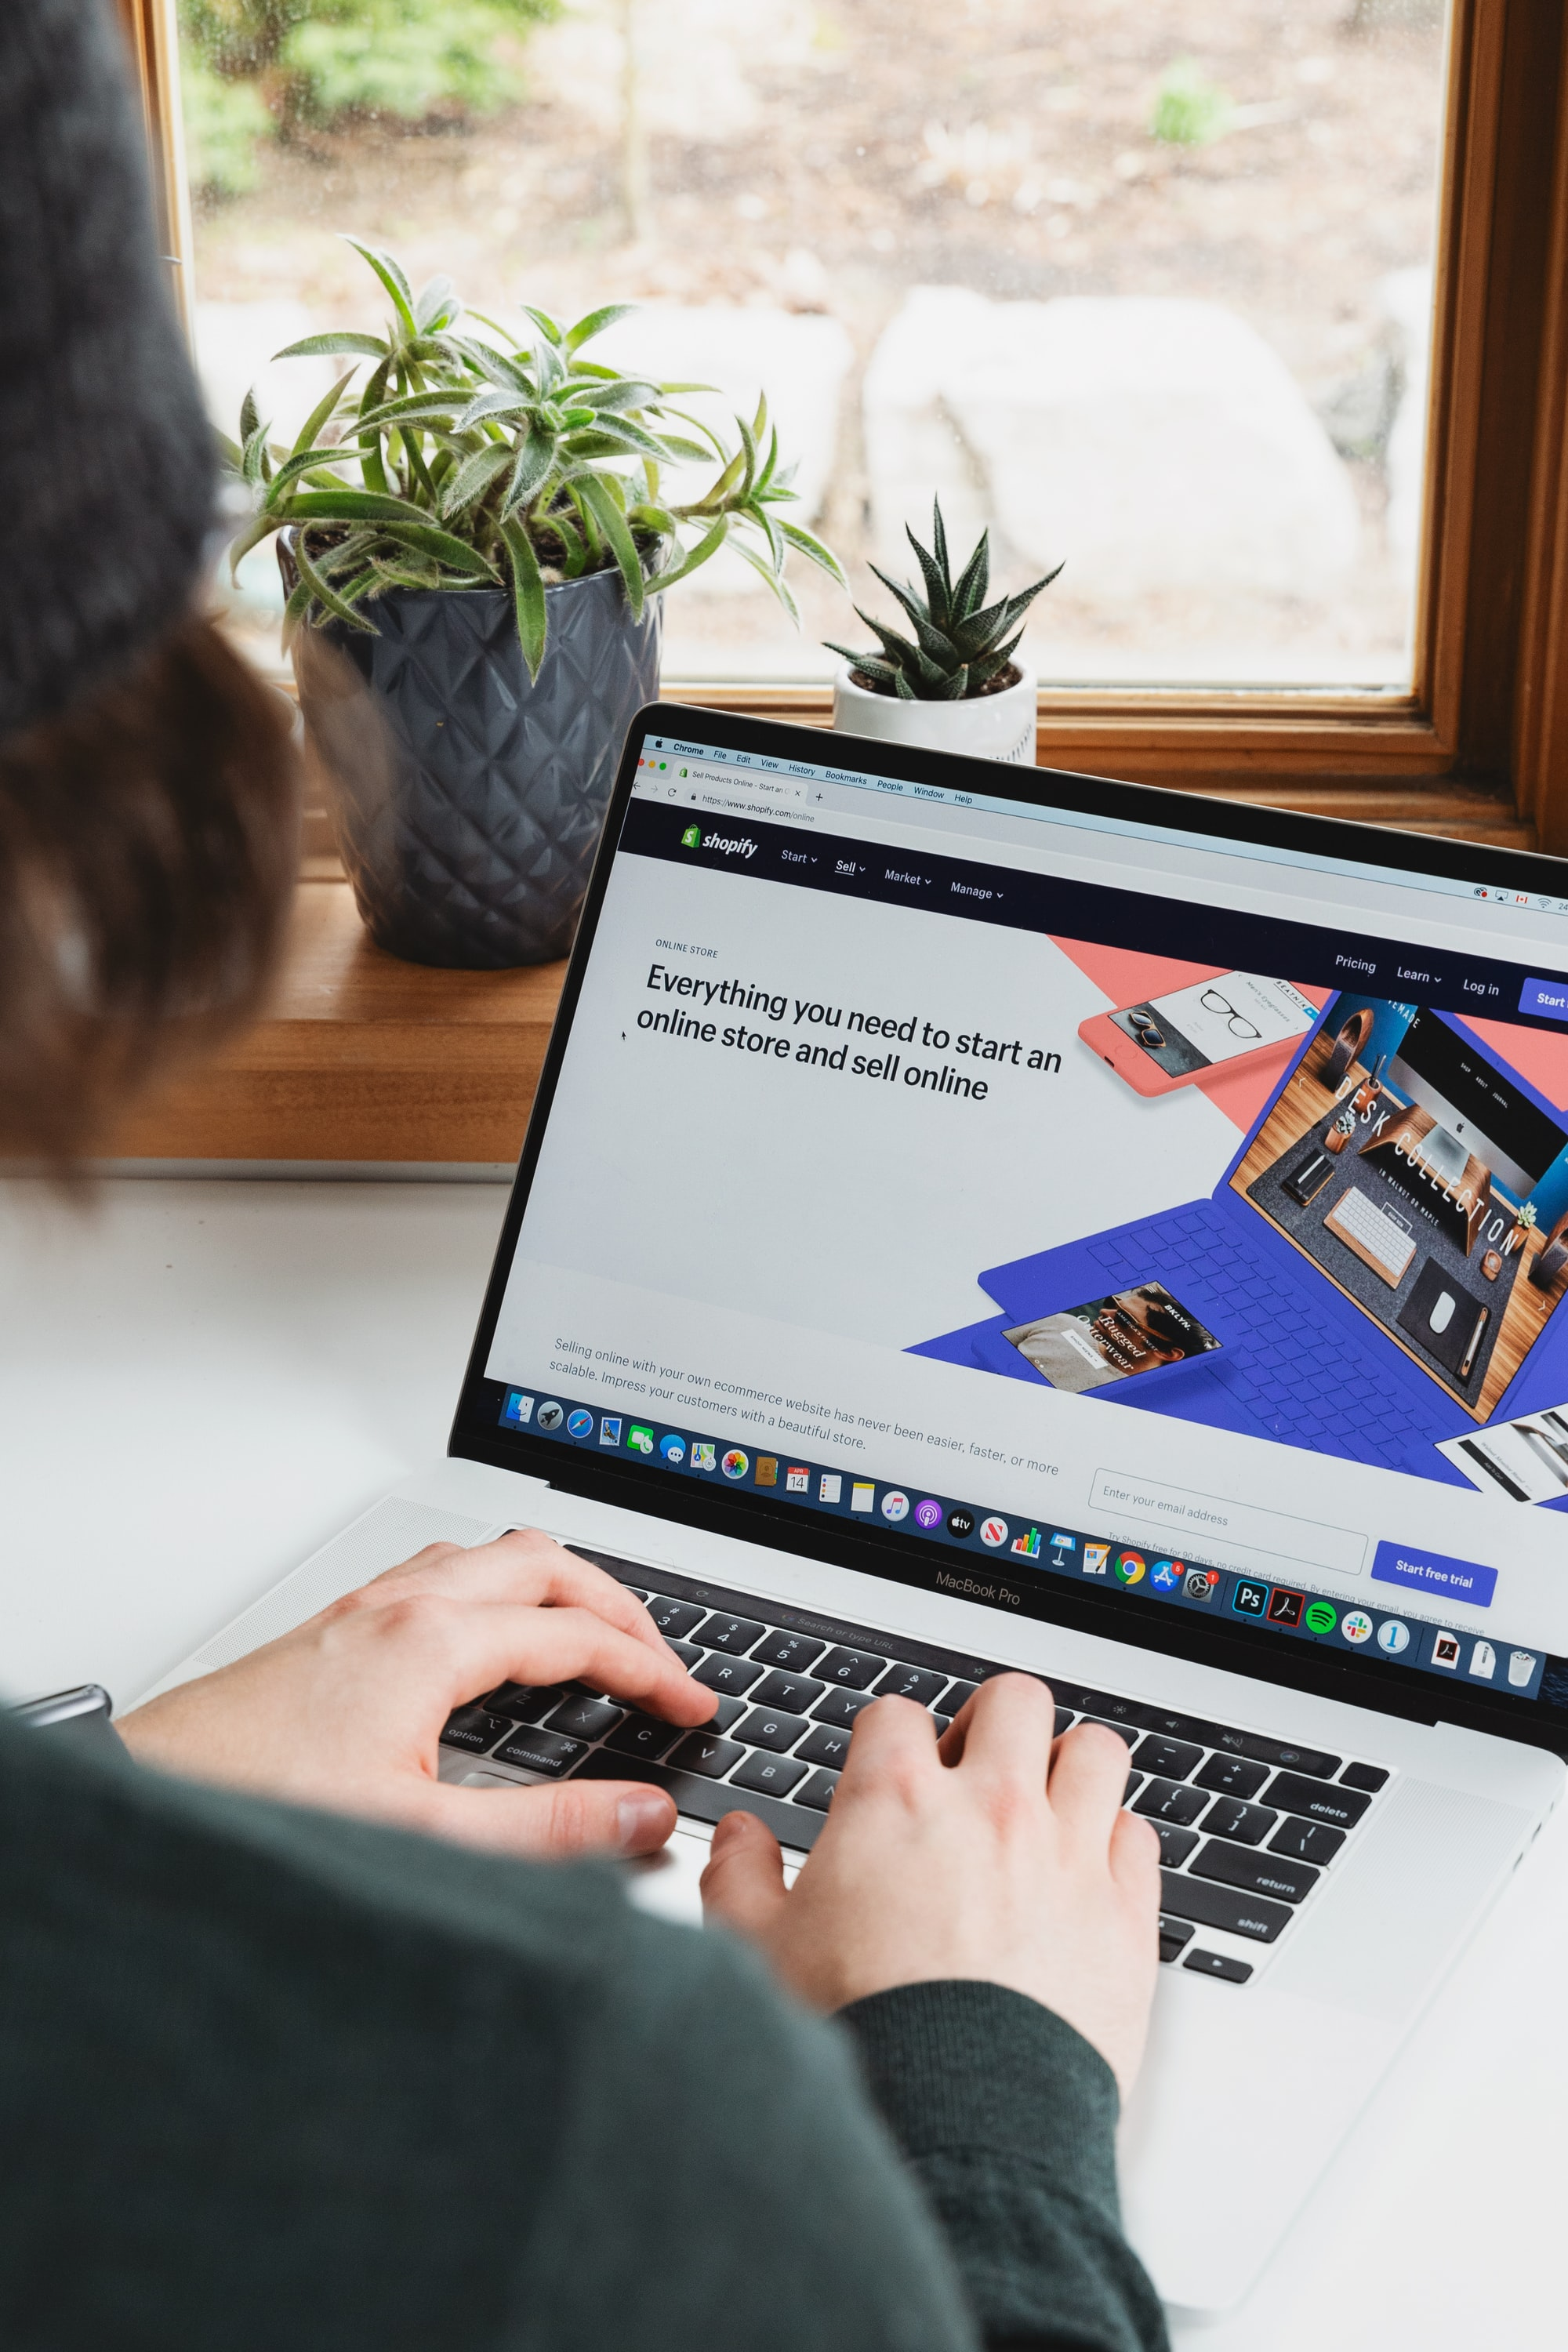 The journey of starting dropshipping business